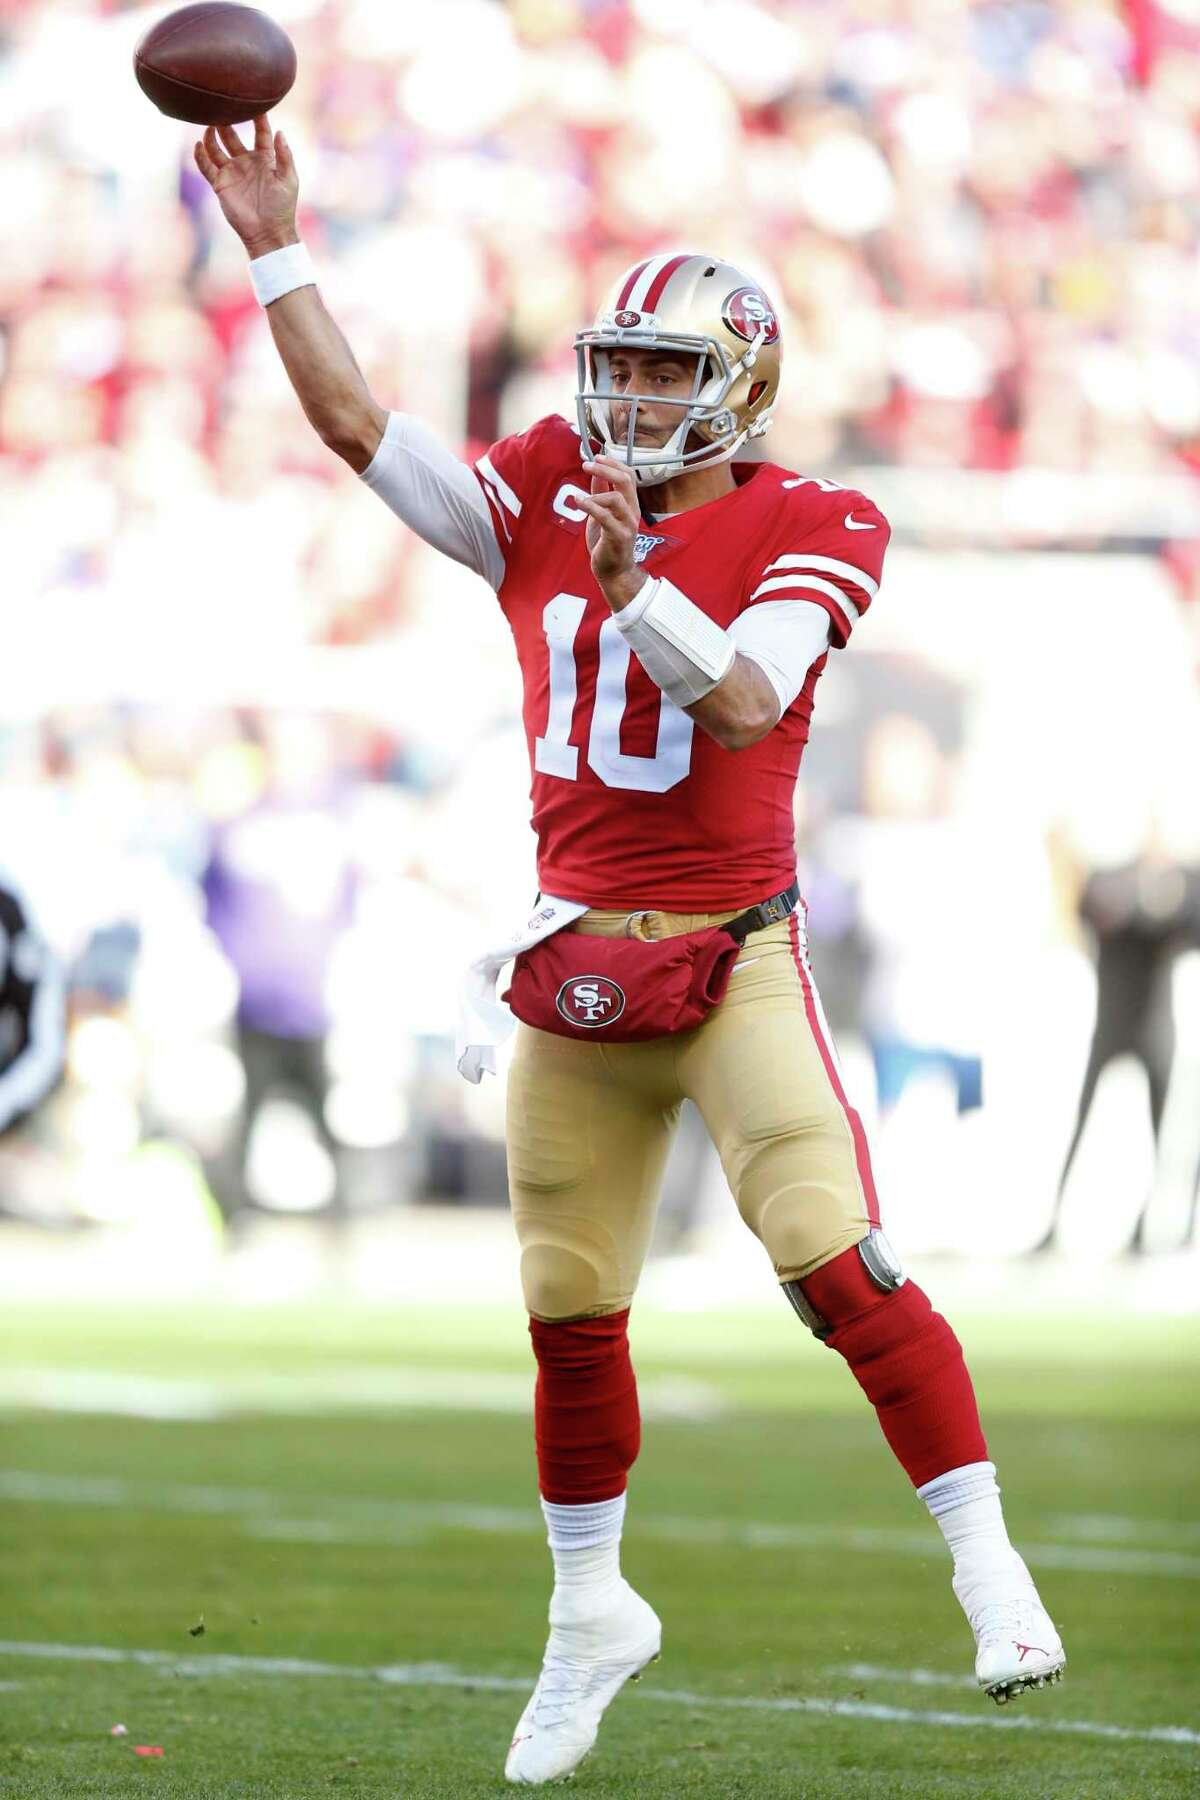 SANTA CLARA, CALIFORNIA - JANUARY 11: Jimmy Garoppolo #10 of the San Francisco 49ers throws a pass during the second half against the Minnesota Vikings during the NFC Divisional Round Playoff game at Levi's Stadium on January 11, 2020 in Santa Clara, California. (Photo by Lachlan Cunningham/Getty Images)